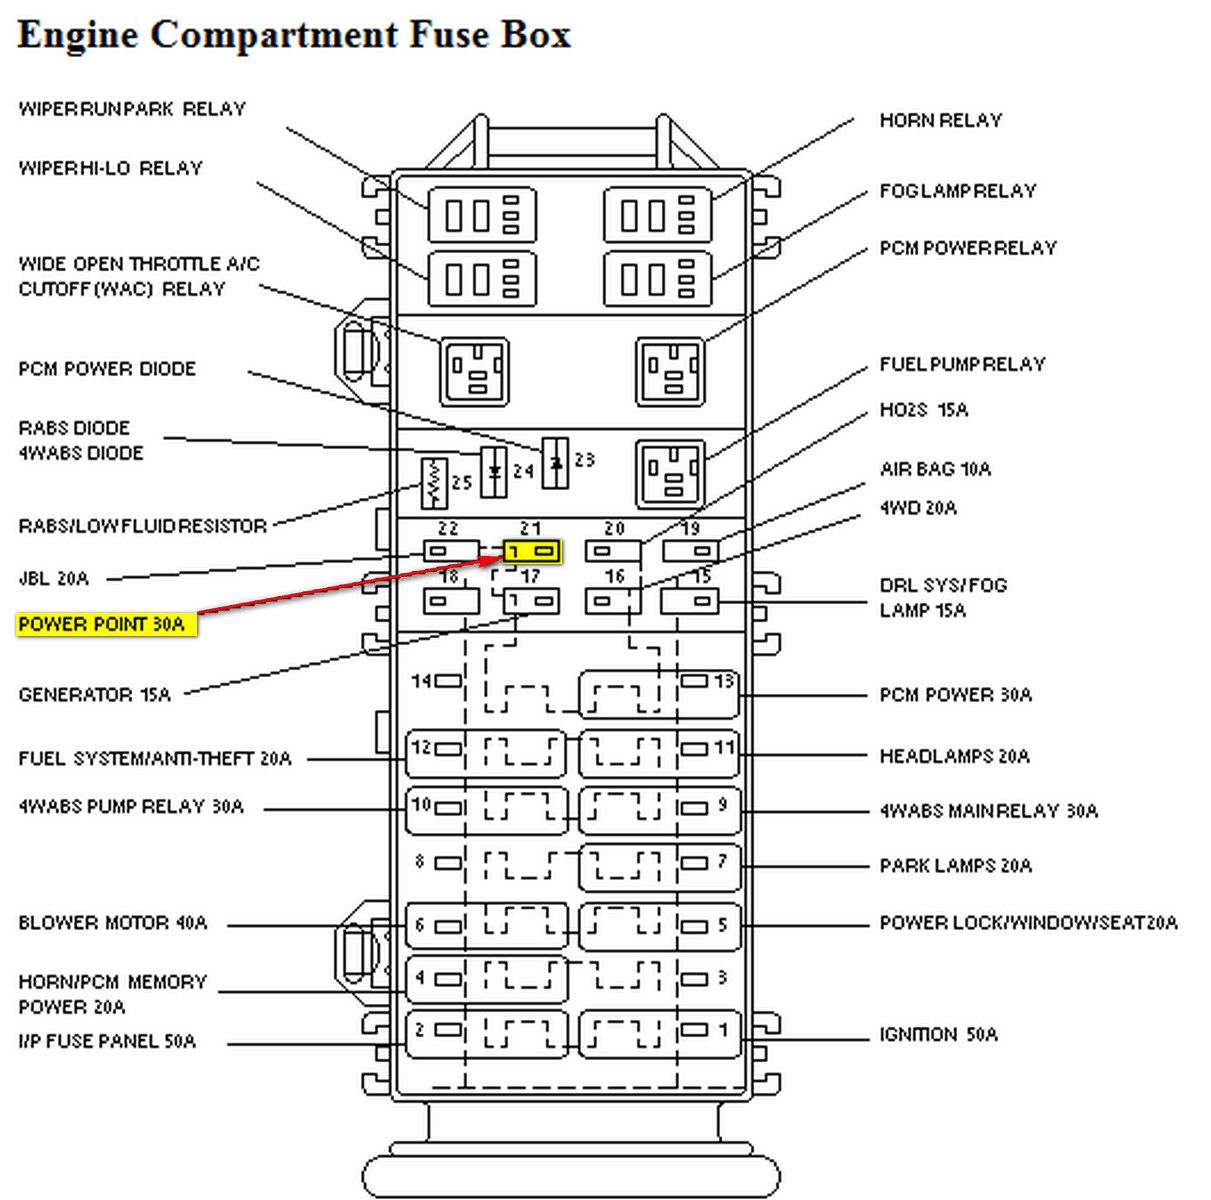 8a55967da7ae1bd251b795845886bd24 2002 ford ranger fuse diagram 1997 ford ranger fuse box diagram 2012 ford edge fuse box diagram at gsmx.co